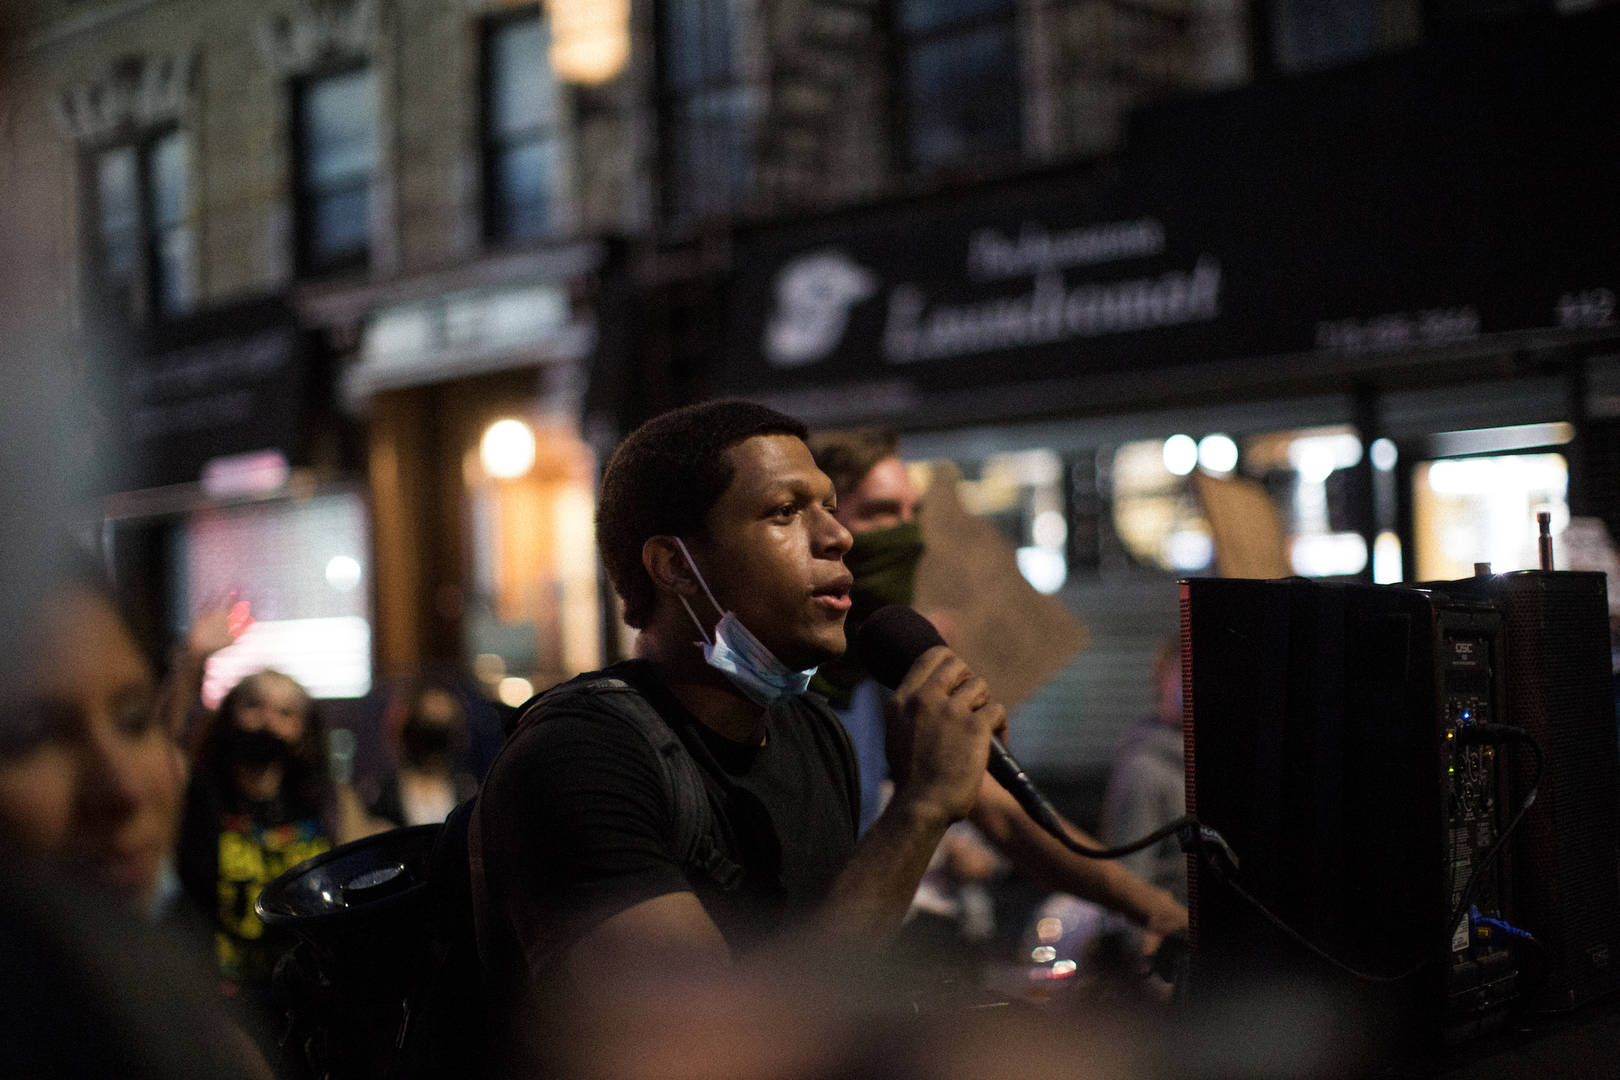 BLM NYC protester